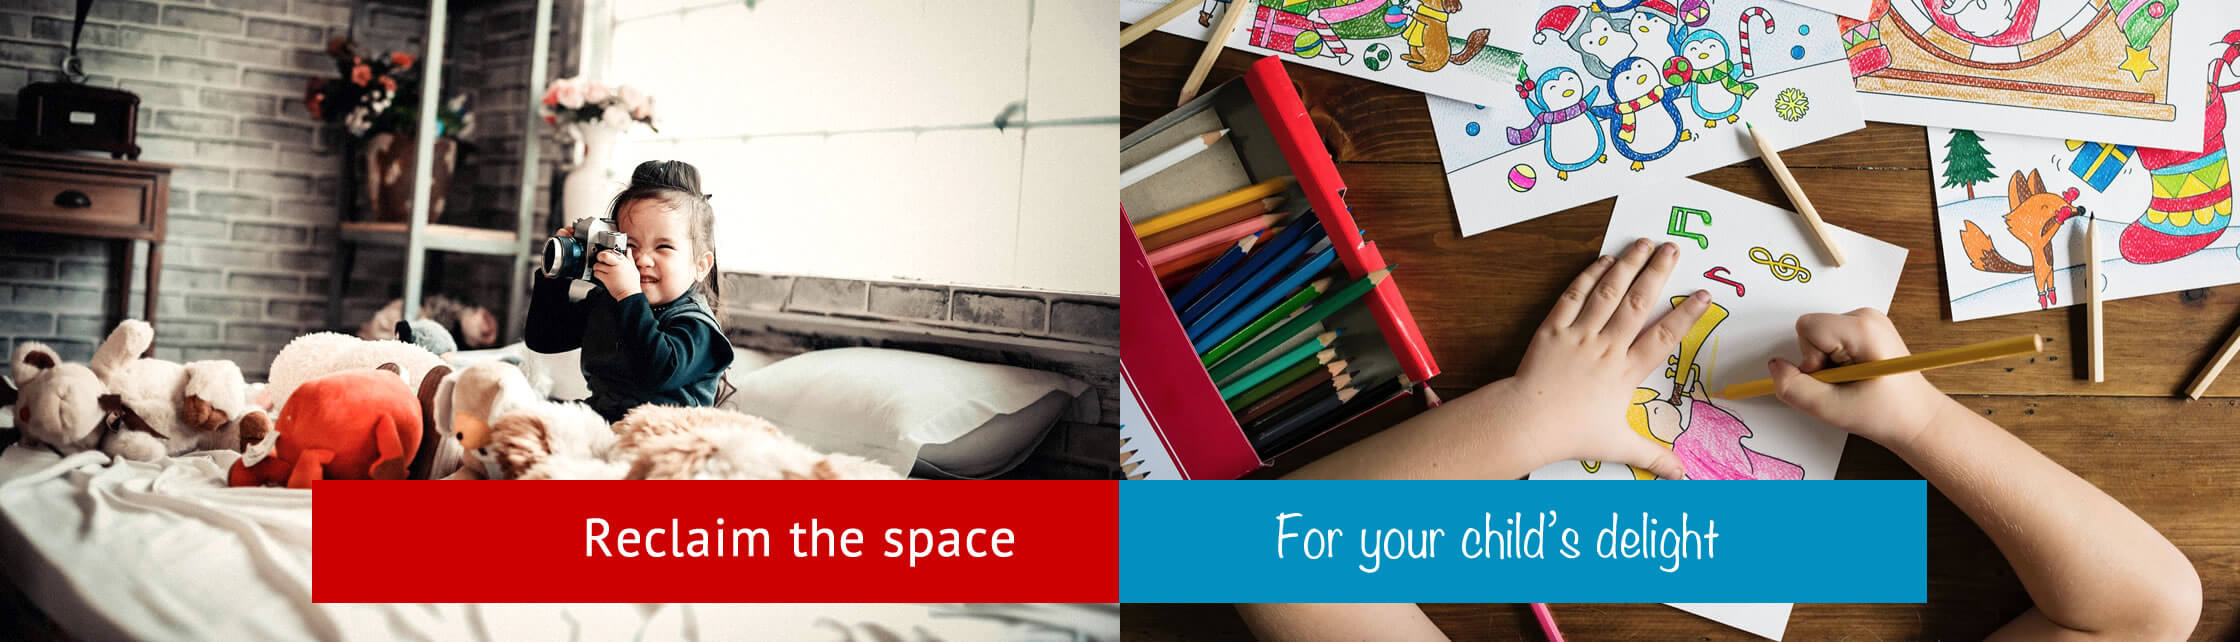 Reclaim the space for your child's delight